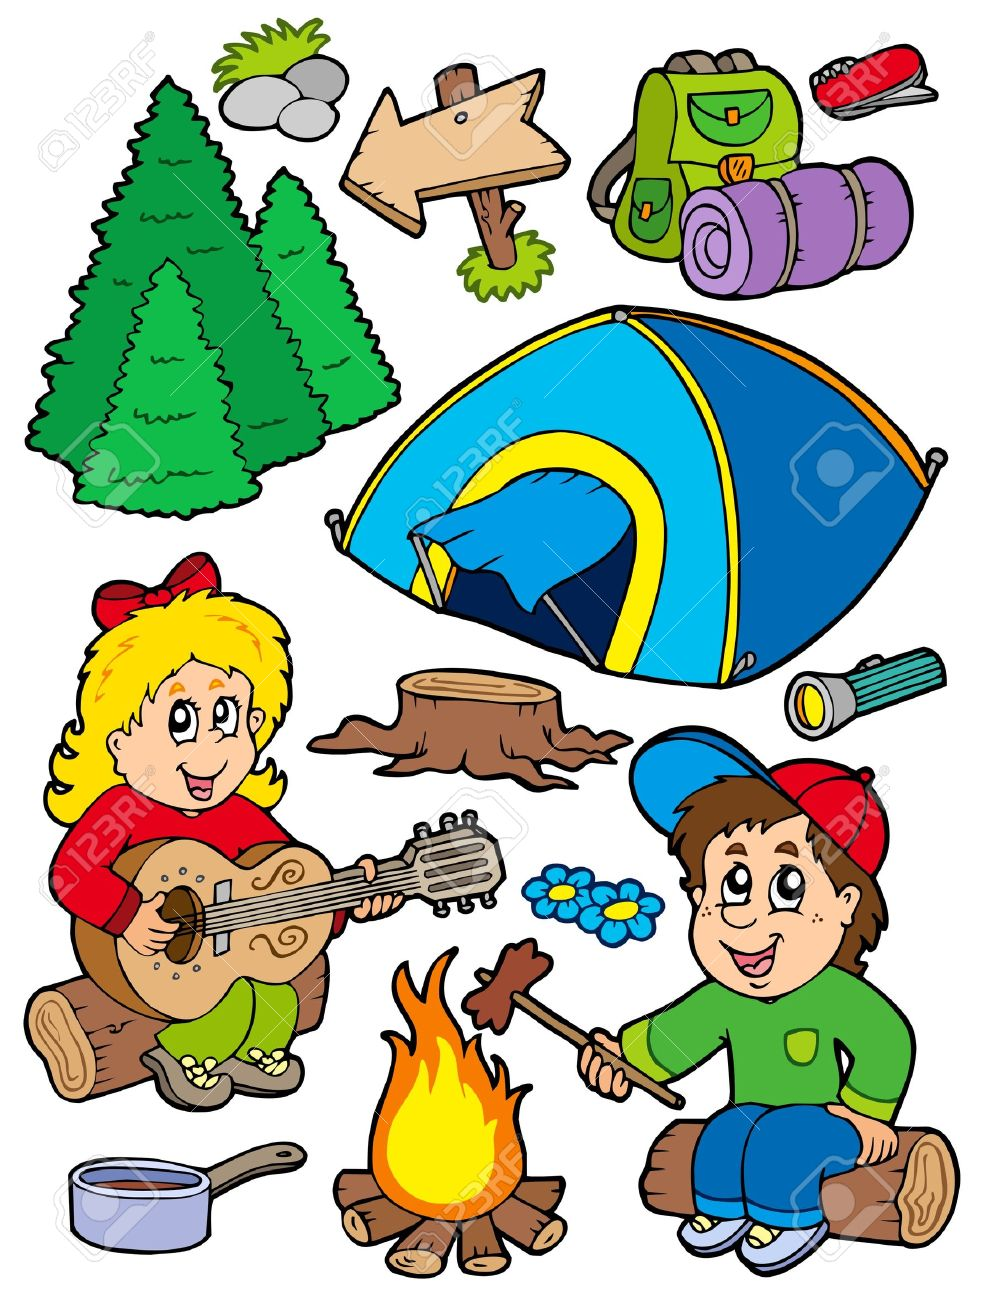 Family Camping Clipart | Free download best Family Camping ...